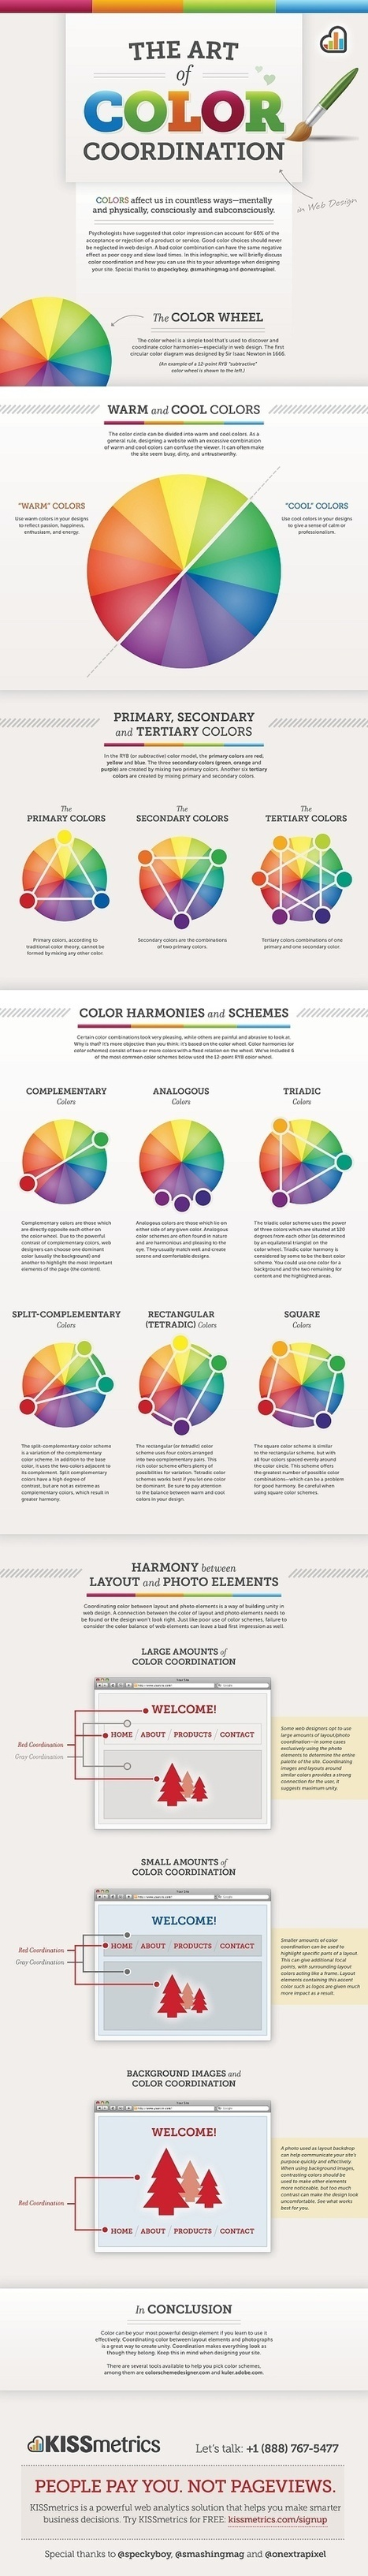 Color Is MASTER of Us All [Infographic] | Communication design | Scoop.it